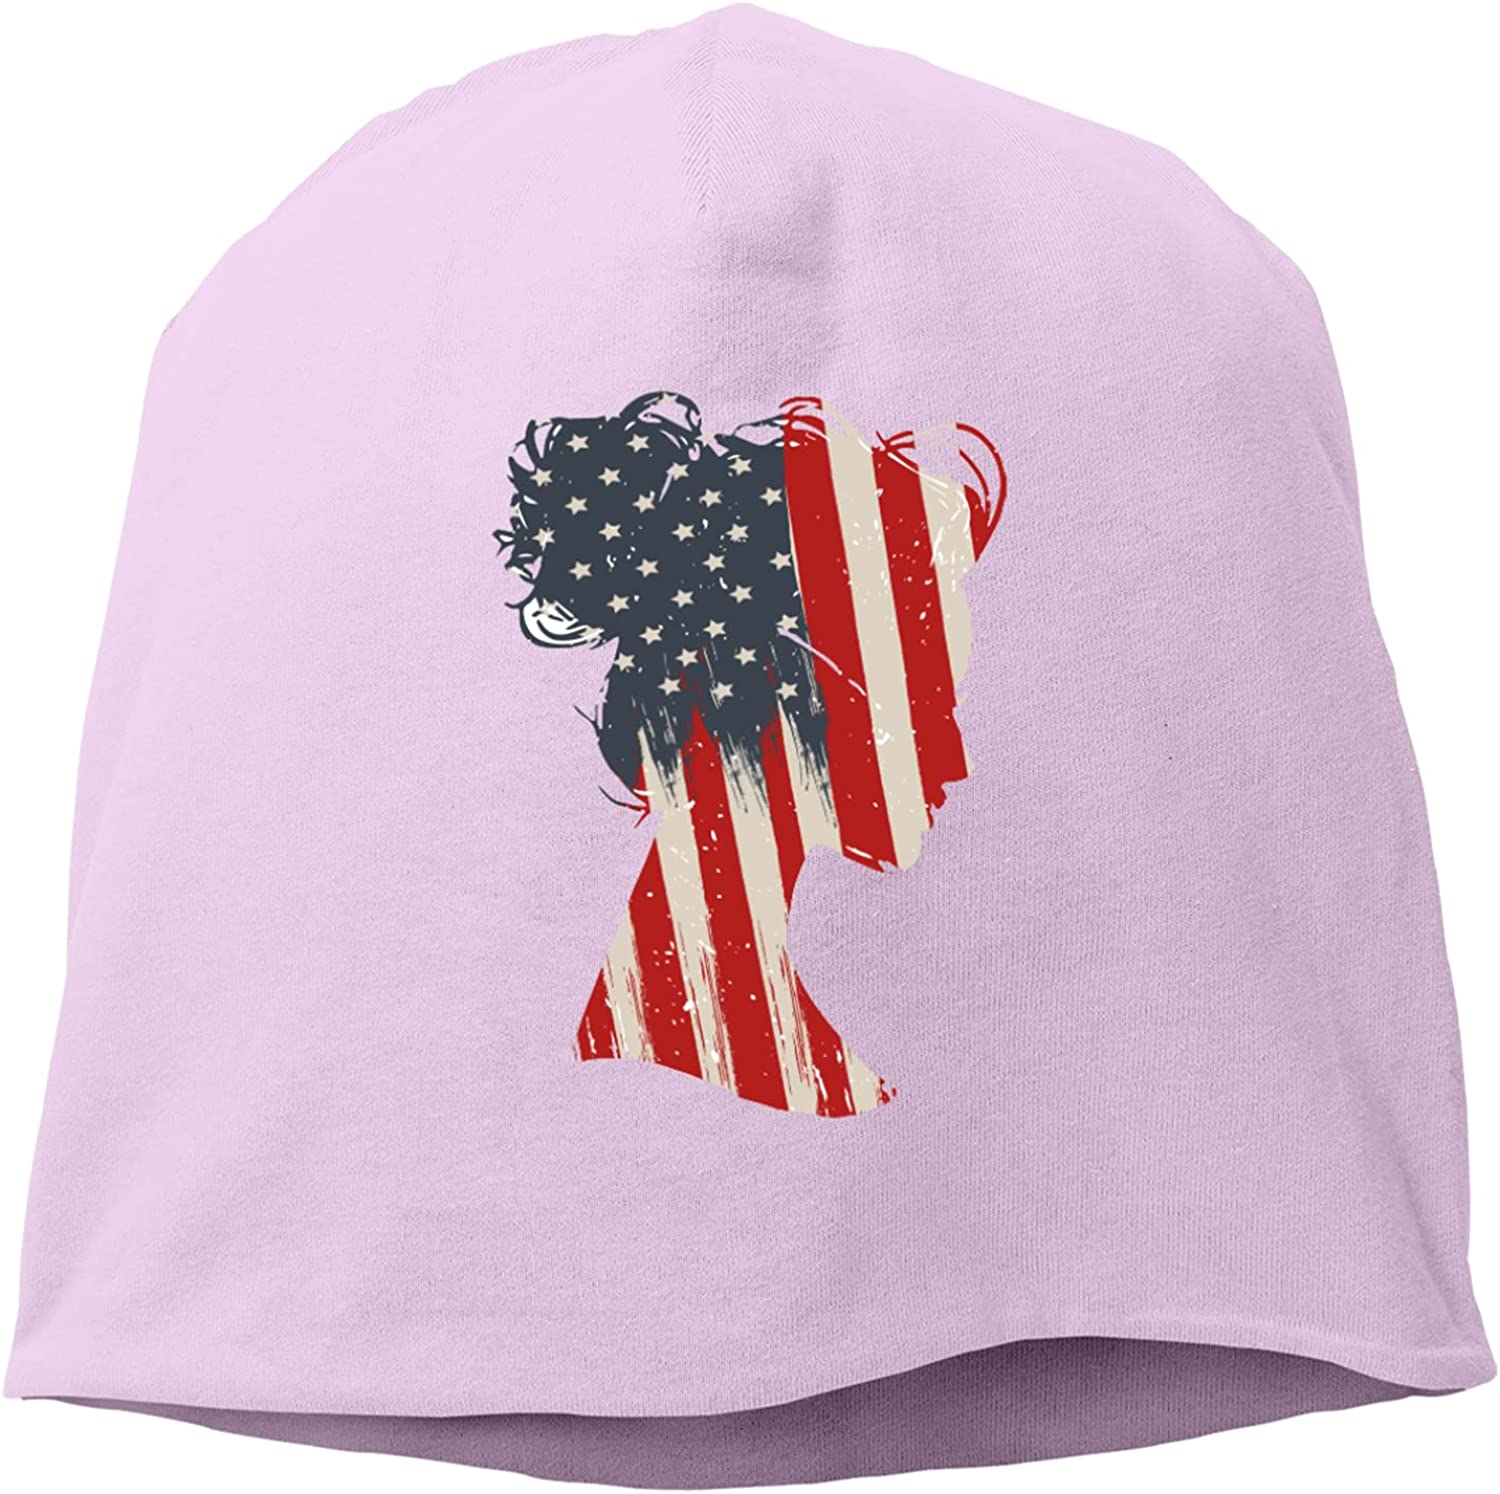 chenhe Woman Large-scale sale USA Flag Limited Special Price Hat,Unisex Hedging Cap Knitted Adjust